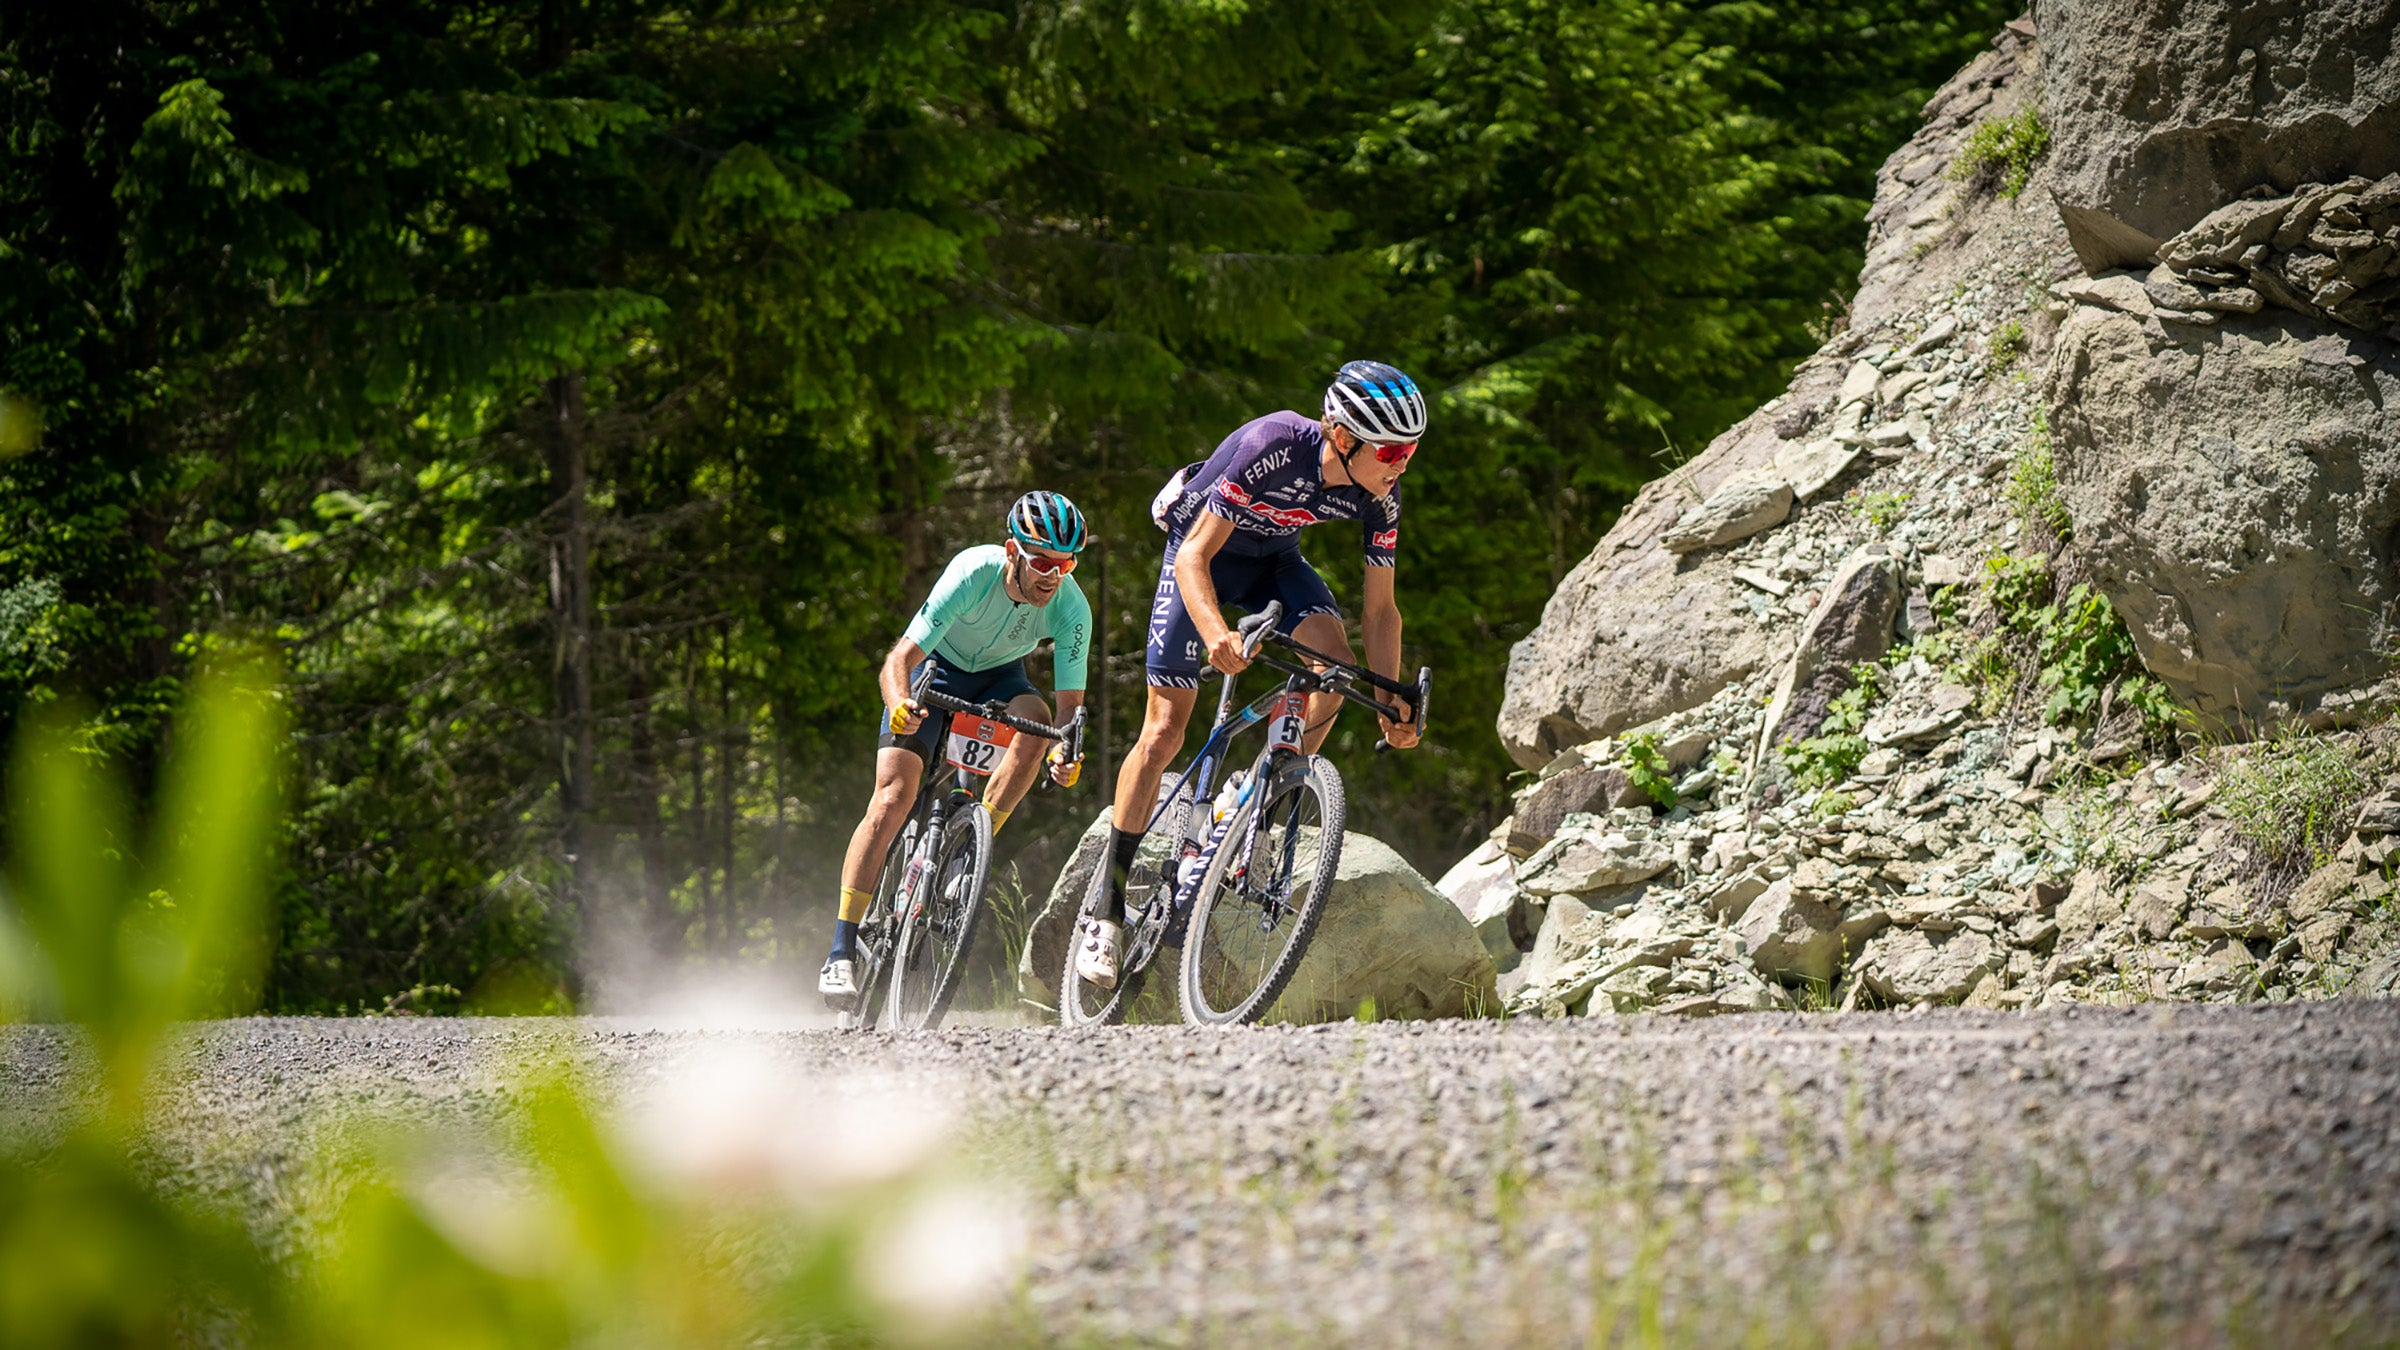 Oregon Trail: Anderson and Kabush drop Stetina on tricky descent; Sturm takes jersey